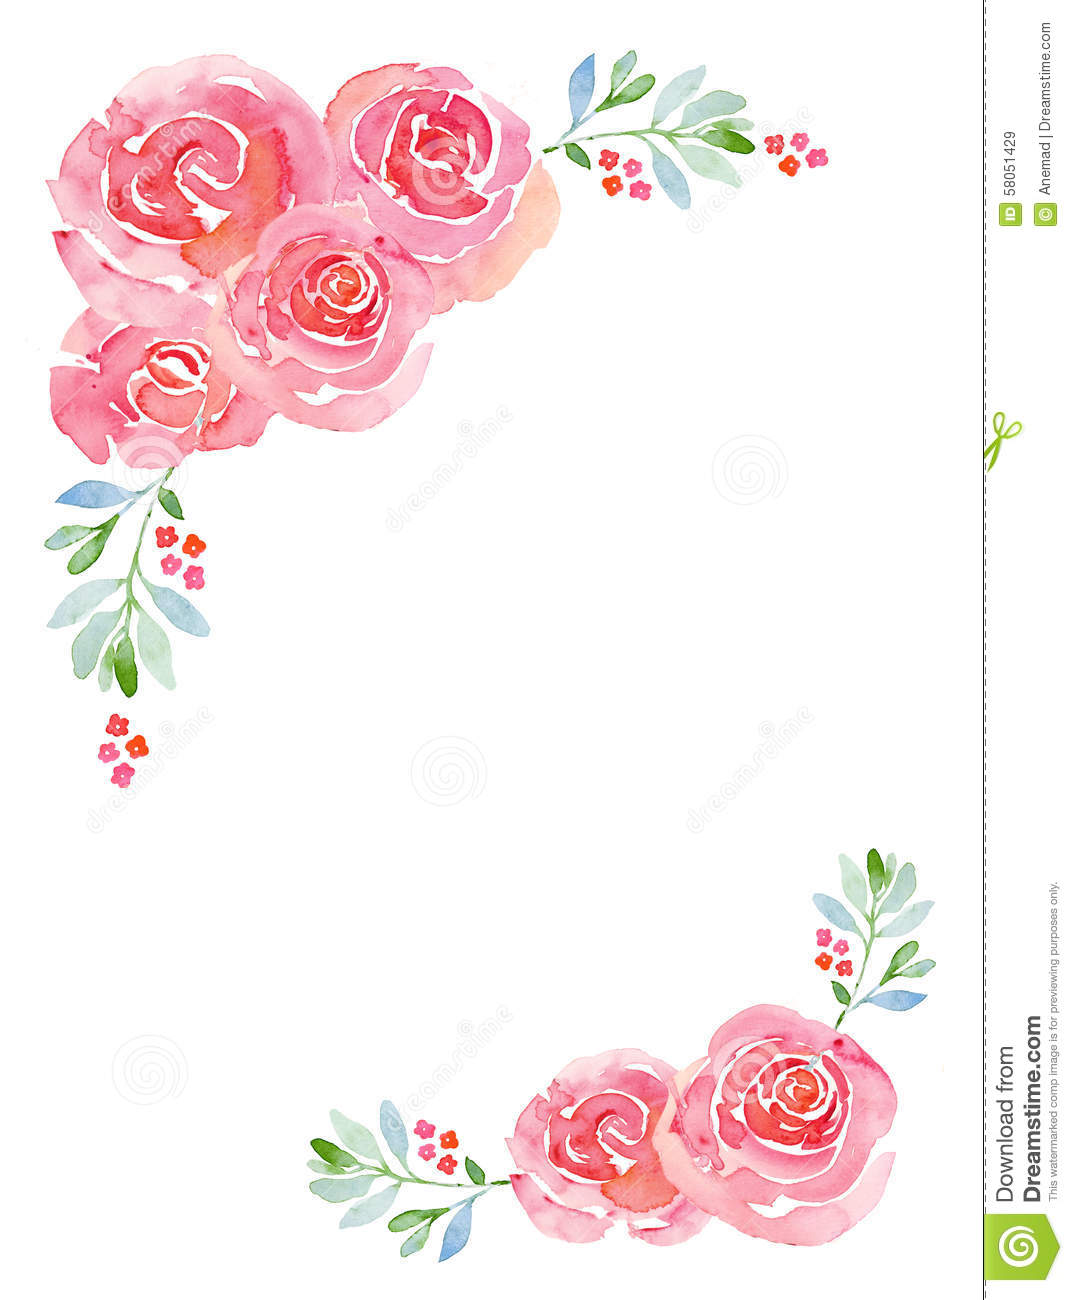 Fb Cover Wallpaper Cute Pink Roses Watercolor Floral Background Stock Illustration